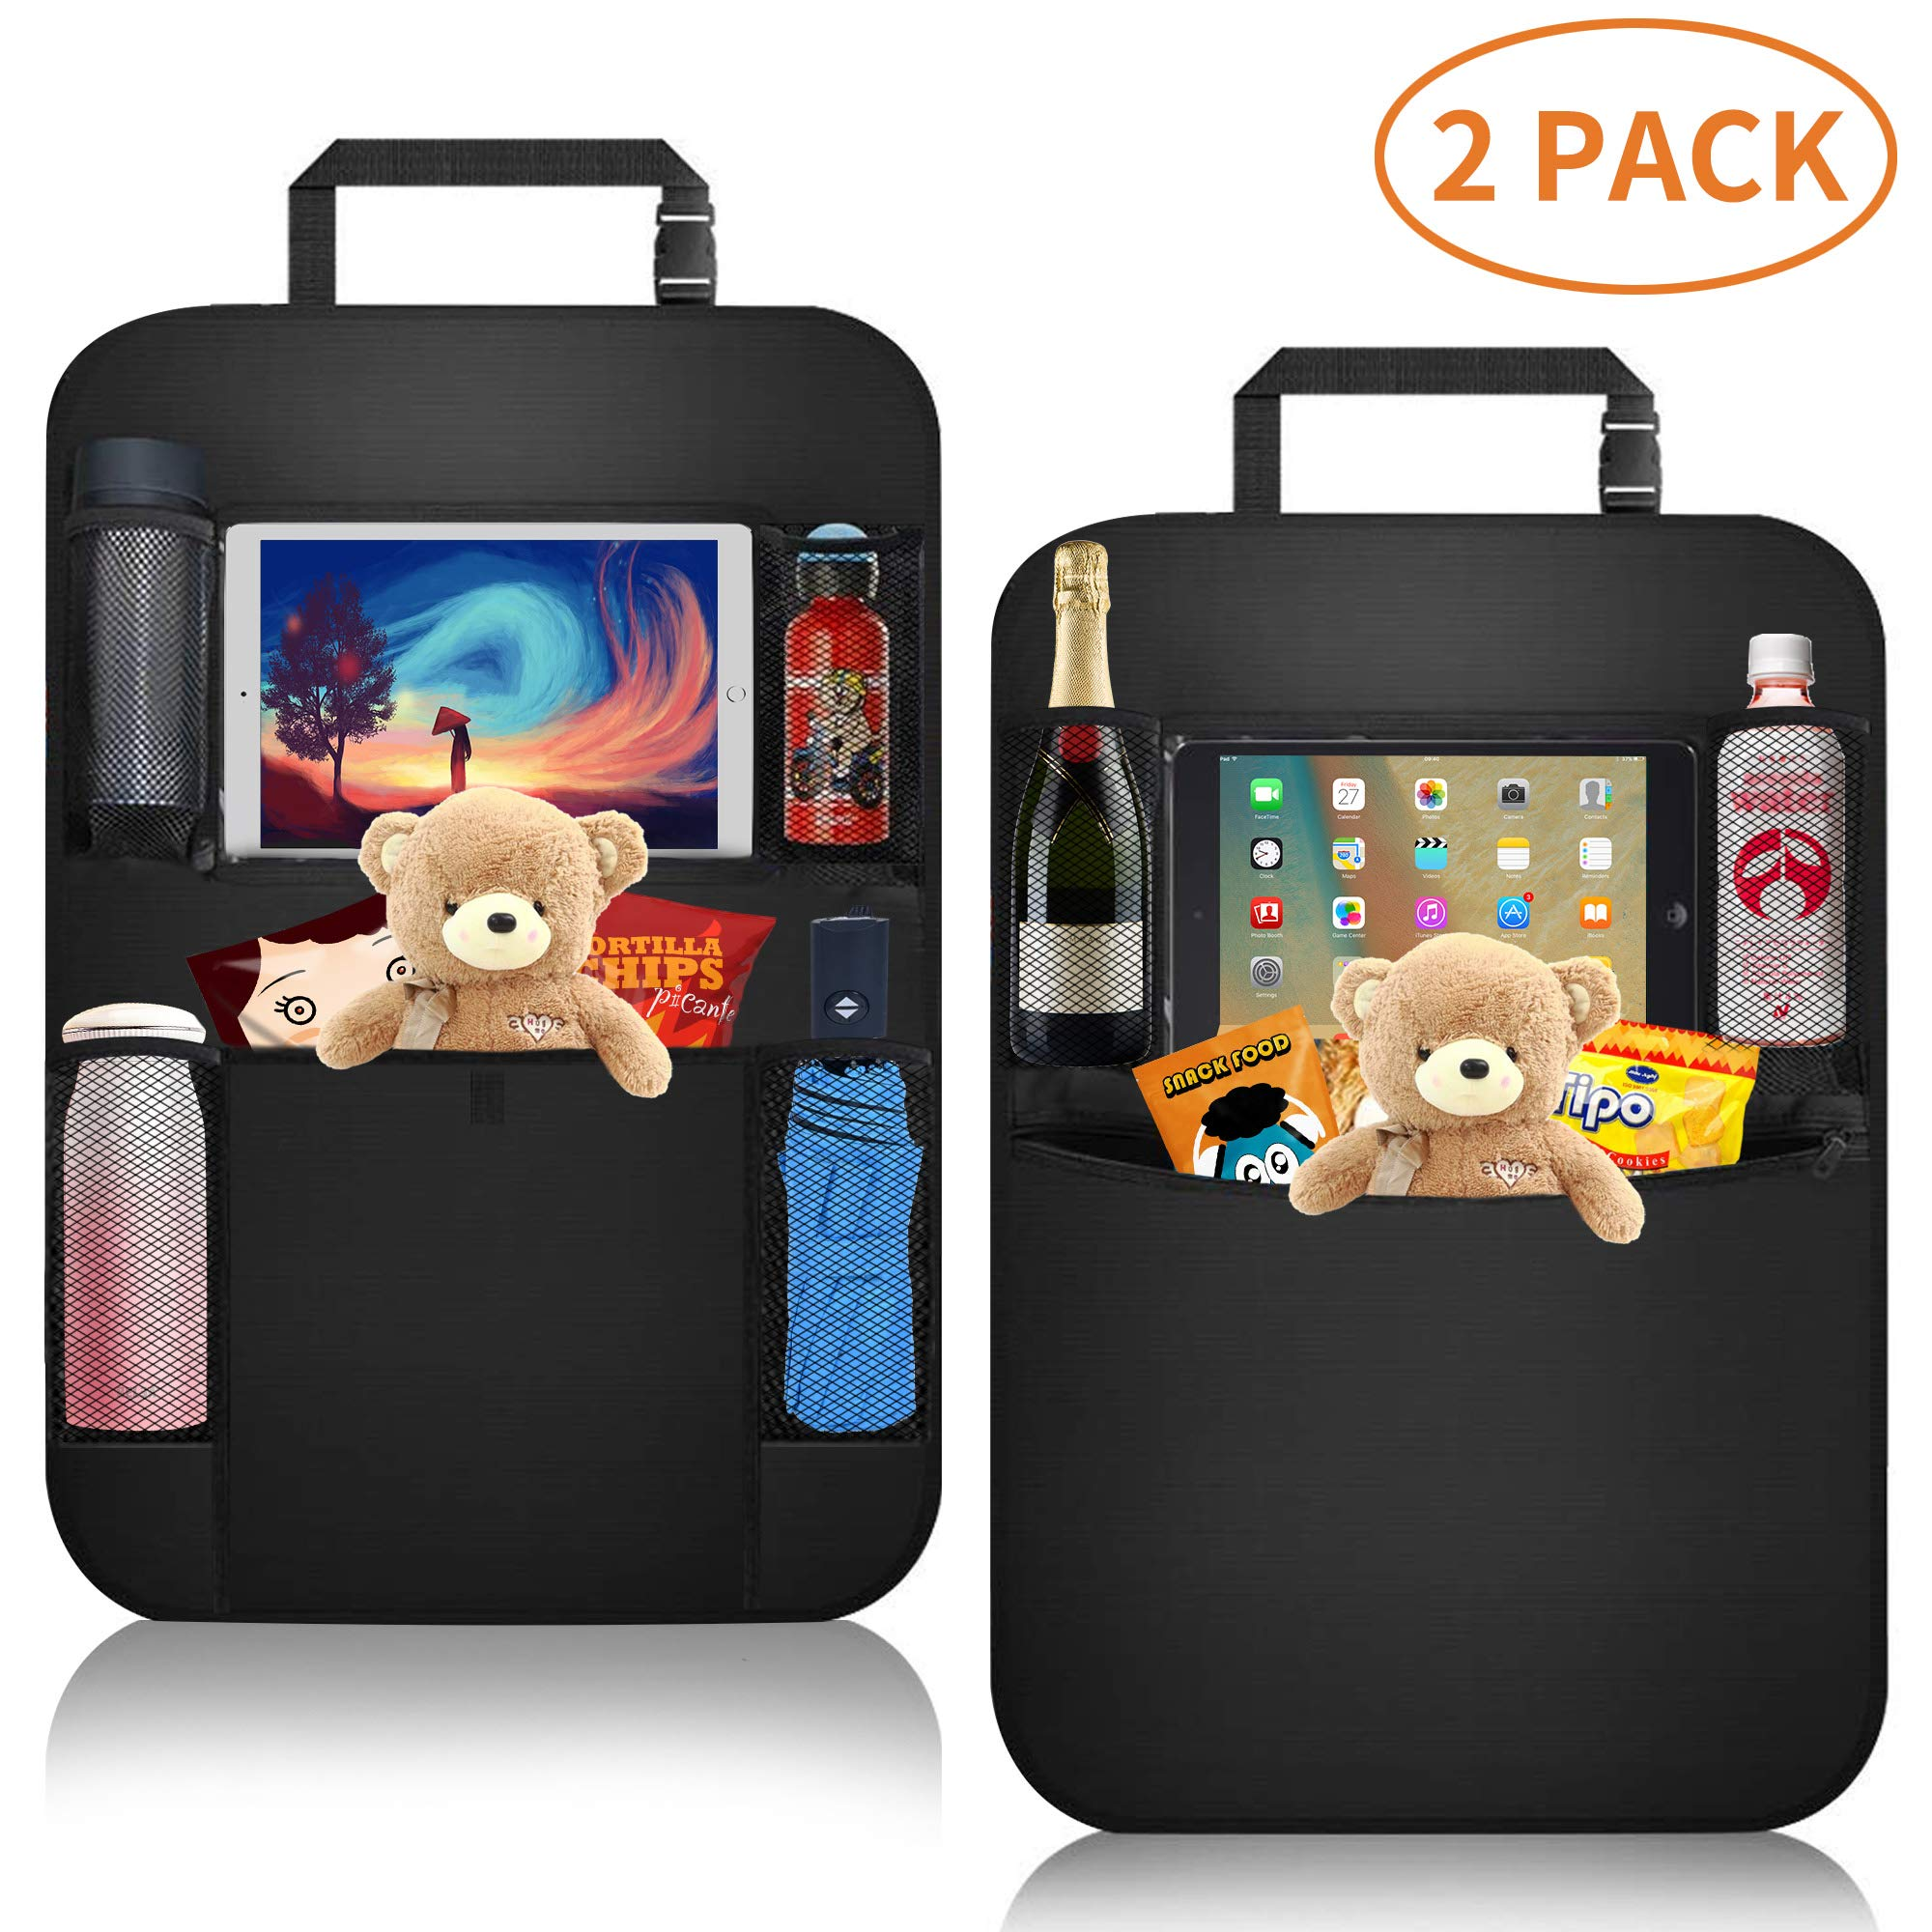 Car Organizer Back Seat,Car Back Seat Protector,Waterproof Kick Mat,Clear Touch Screen Tablet Holder for Kid/Travel with Multi Pocket,Car Seat Organizer,Car Storage Organizer with 2 Pack by KIPIDA